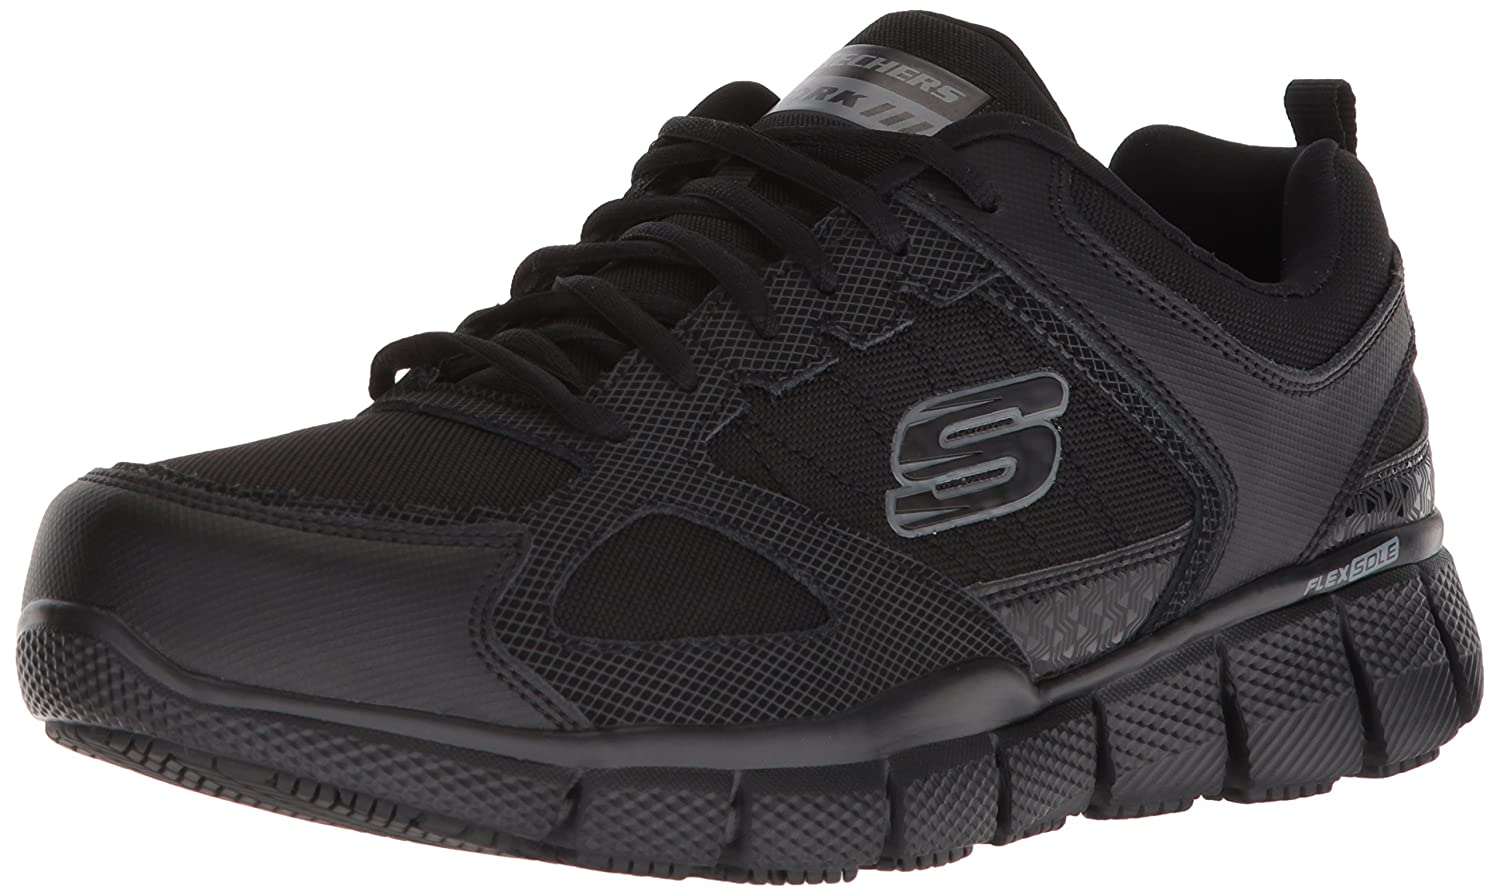 Skechers Men's Telfin-Sanphet Industrial zapatos, negro Leather Courdura, 10 W US